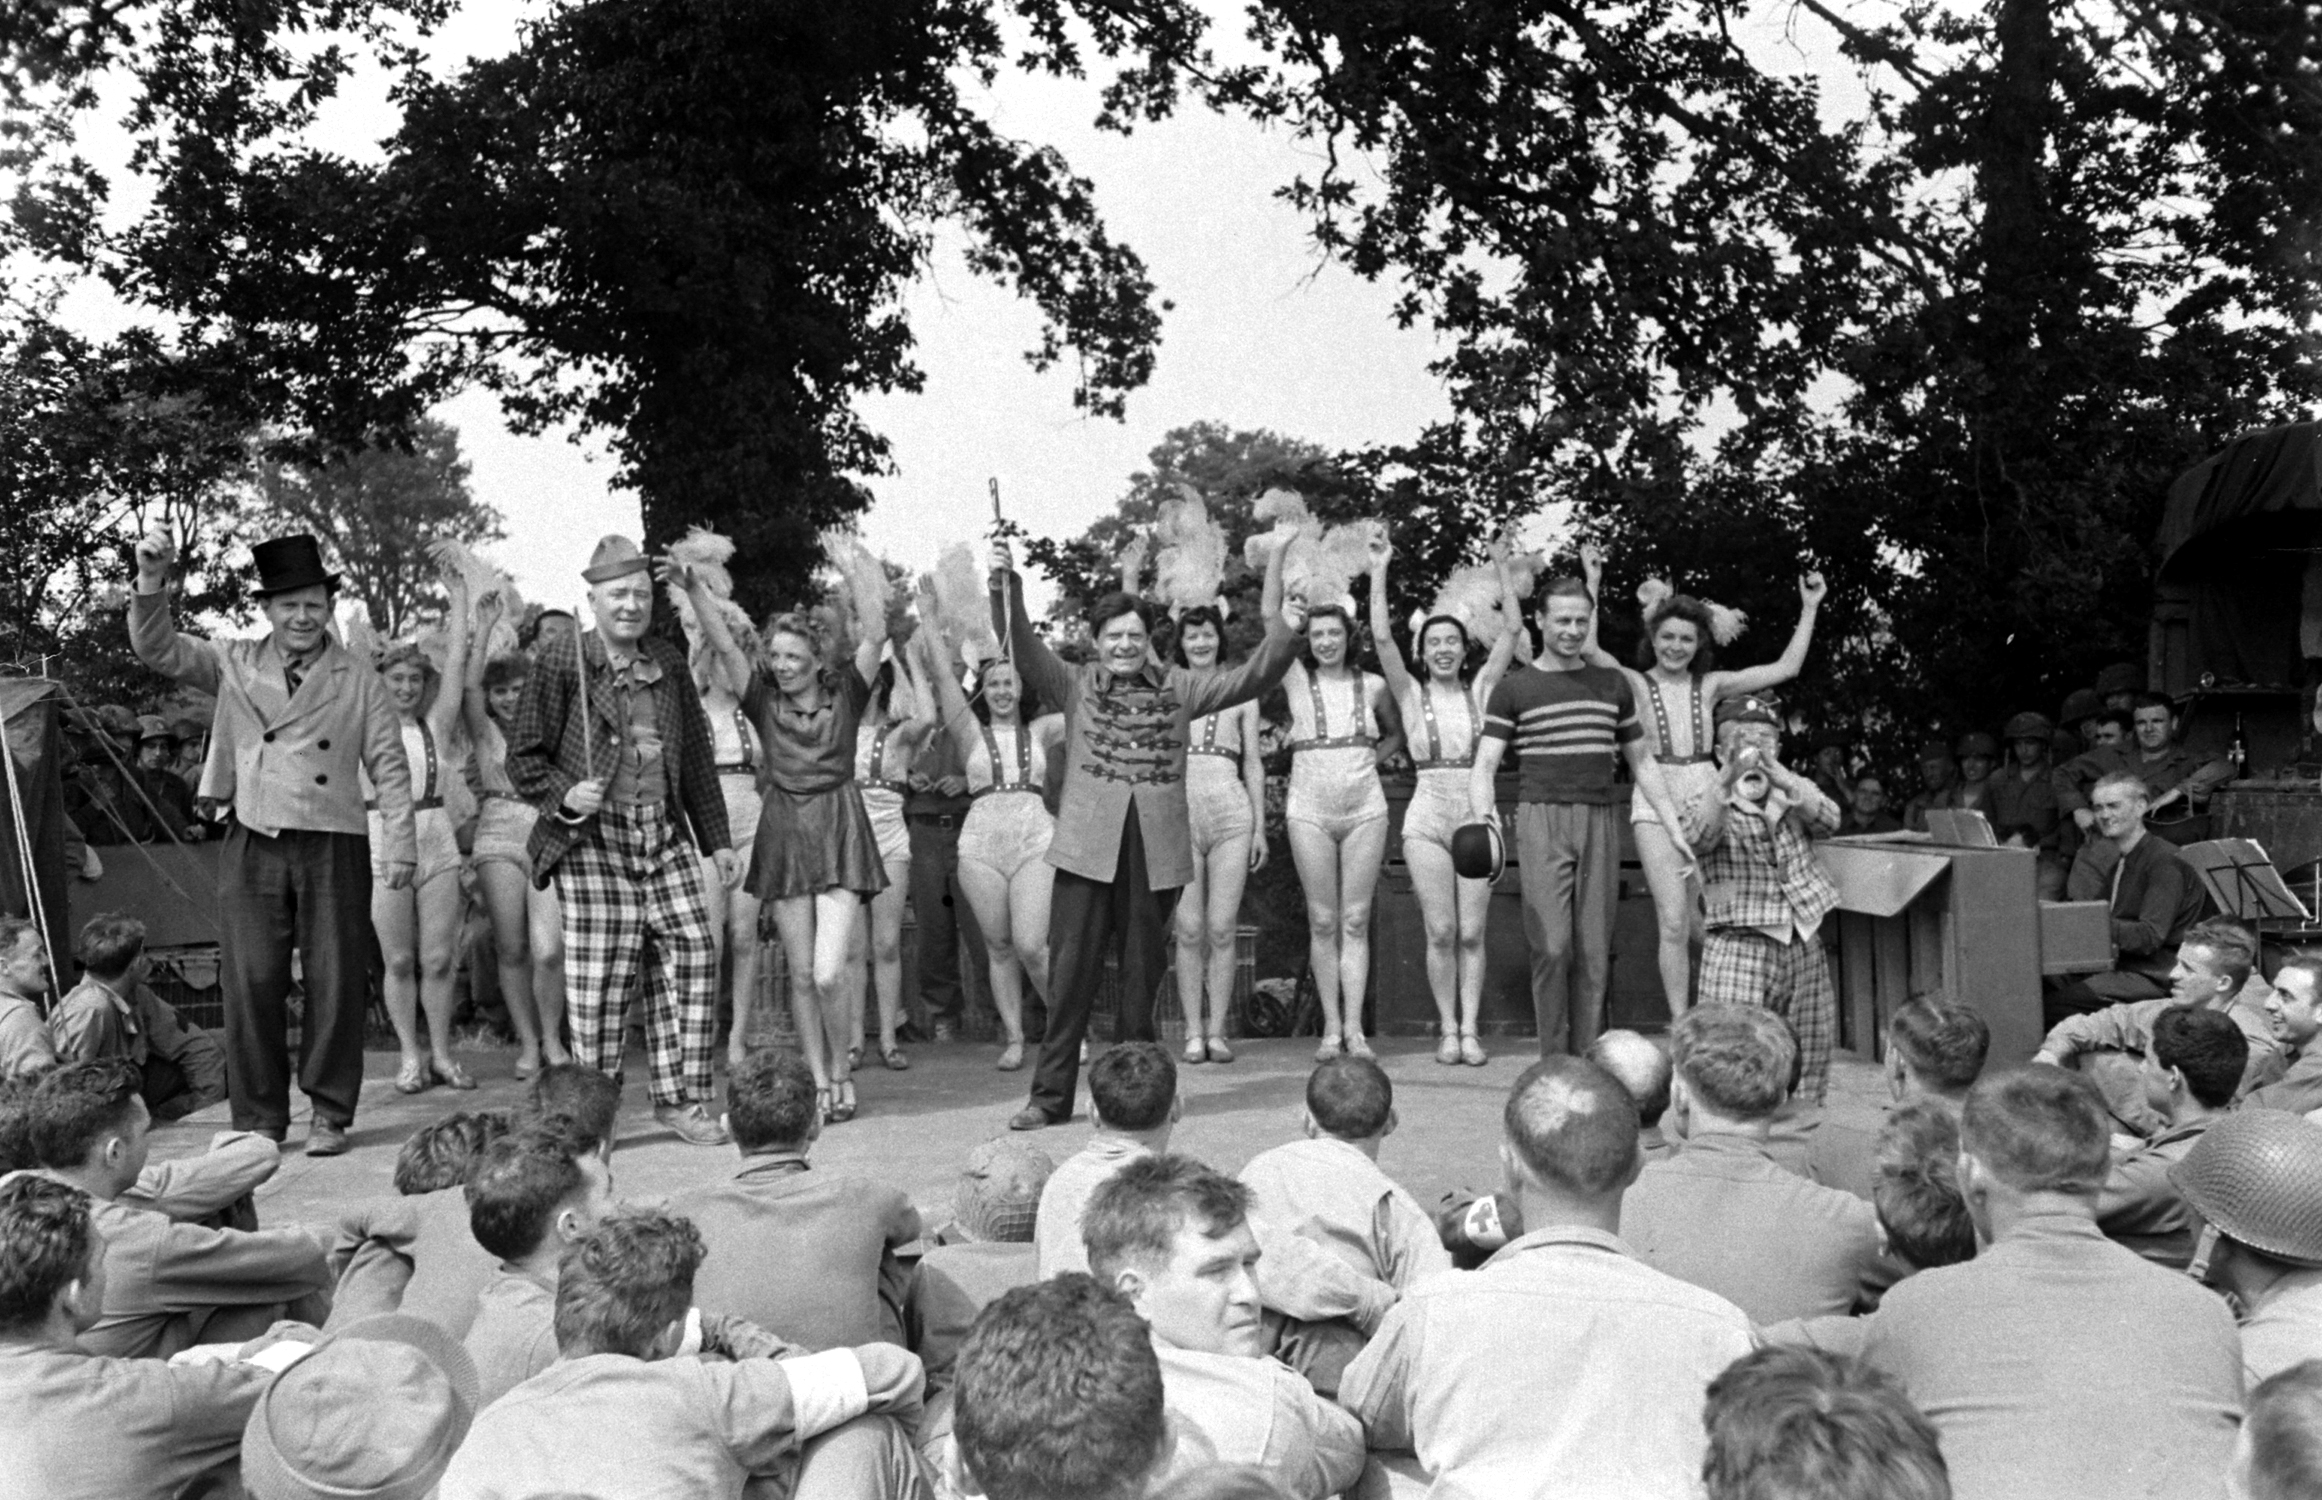 French performers in show for U.S. troops after D-Day take a bow, Normandy, 1944.